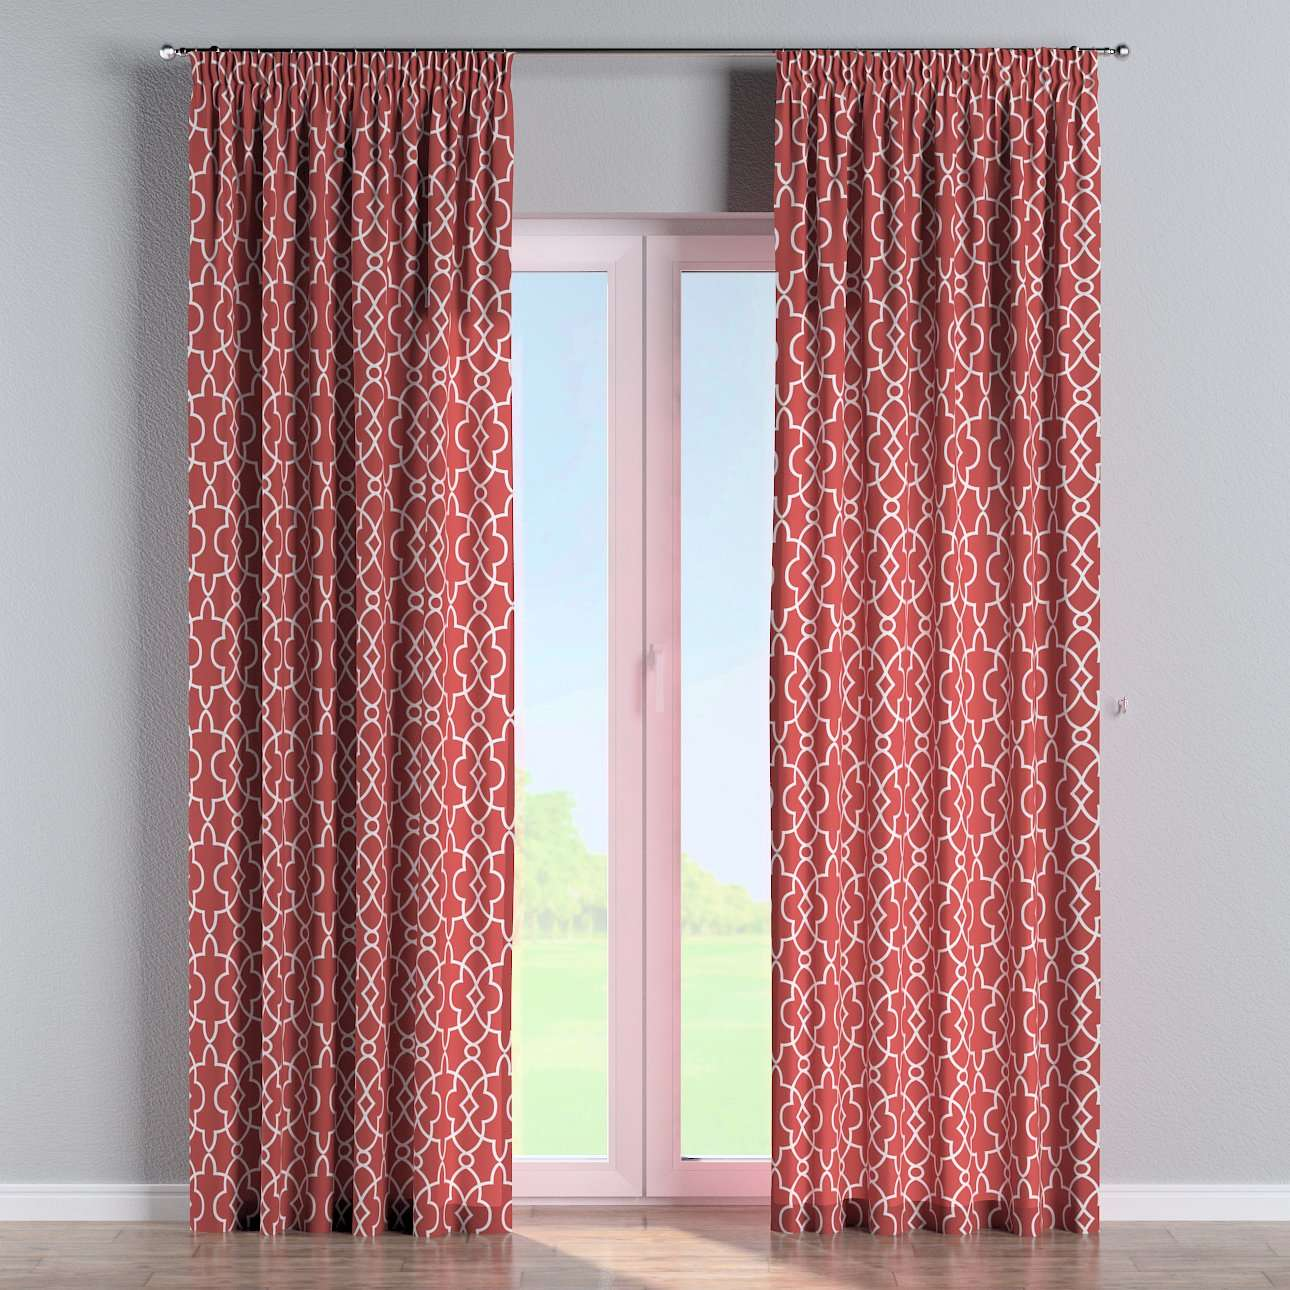 Pencil pleat curtains in collection Gardenia, fabric: 142-21